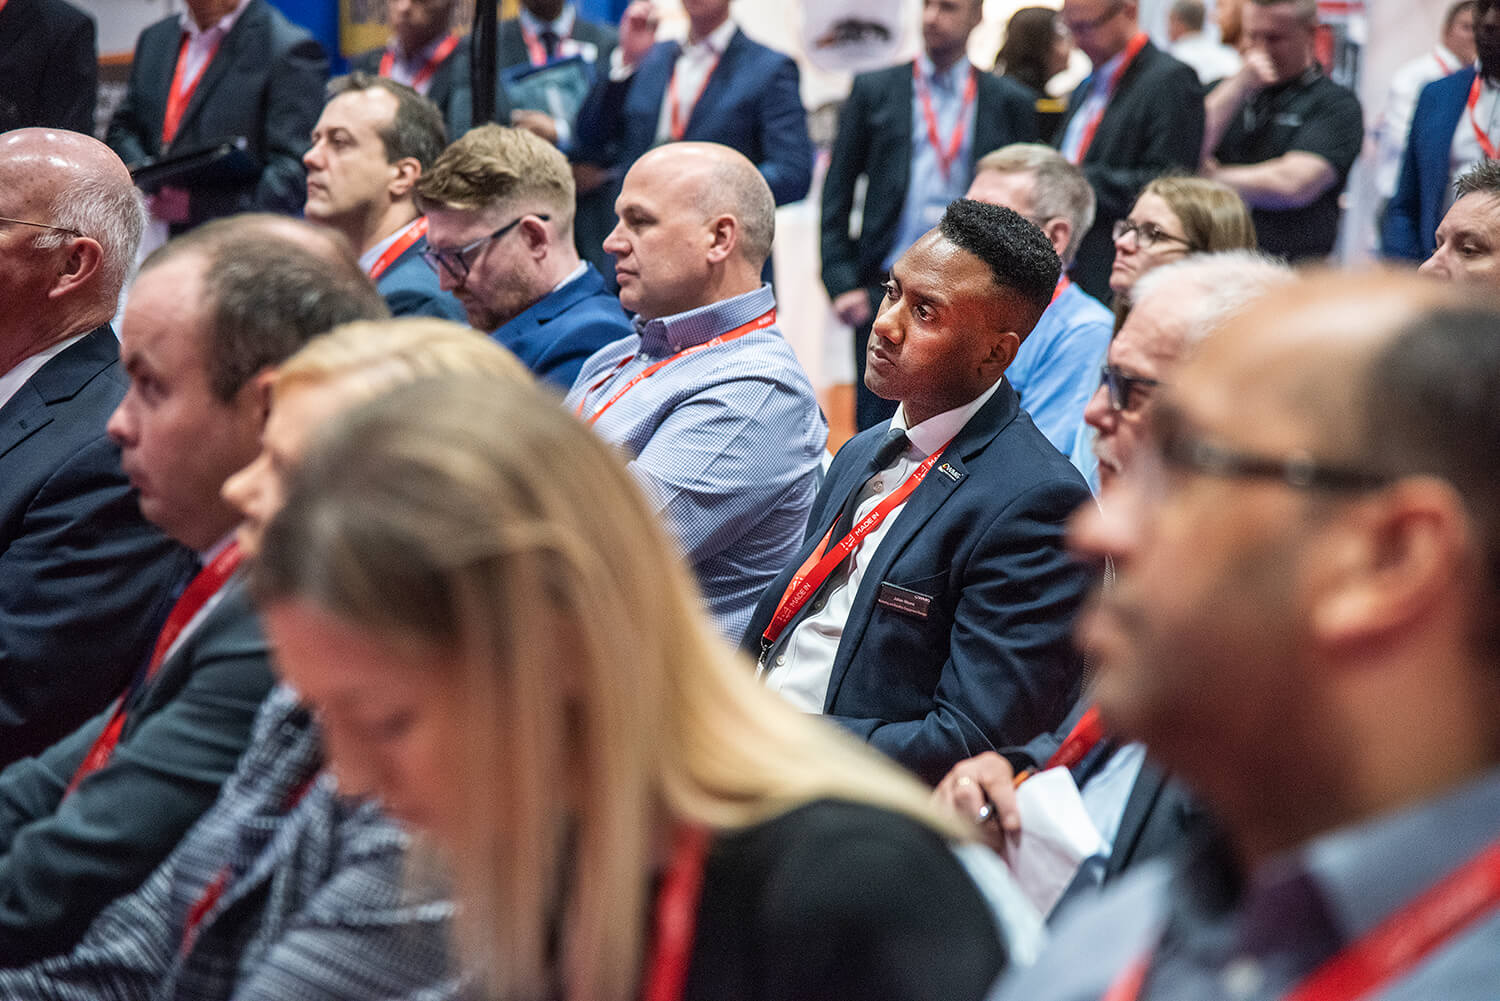 Conference and Event Coverage. Coventry and Birmingham. A lifestyle image of delegates at a large event in the West Midlands.